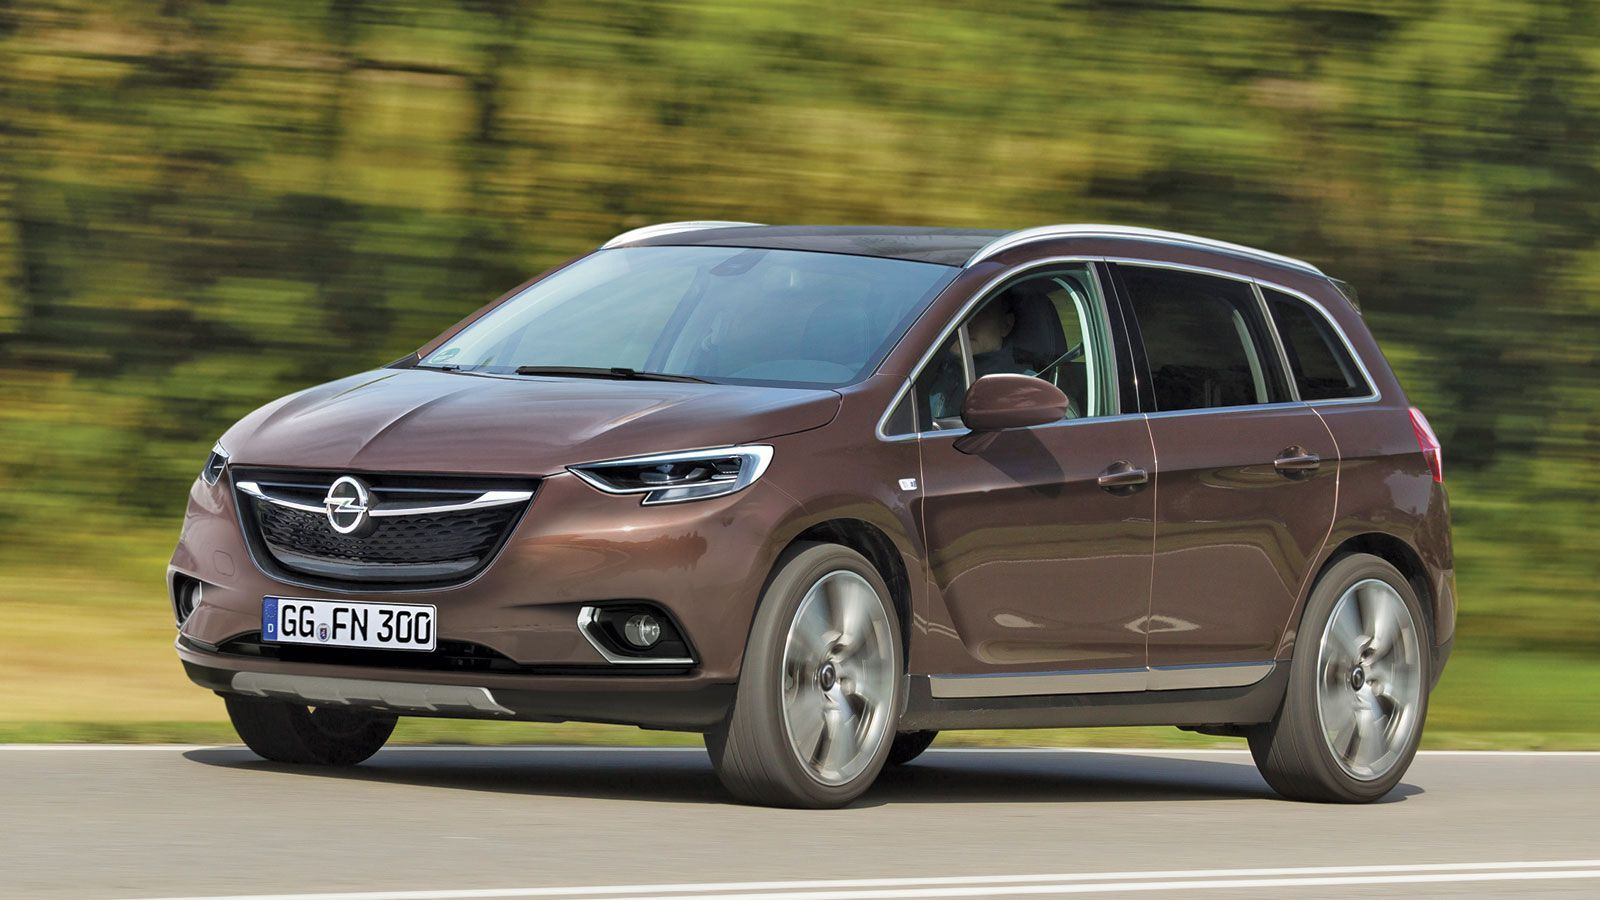 2017 Opel Zafira Redesign Specs And Release Date 2 >> Opel Zafira 2019 Opel Will Release New Zafira For 2019 Season